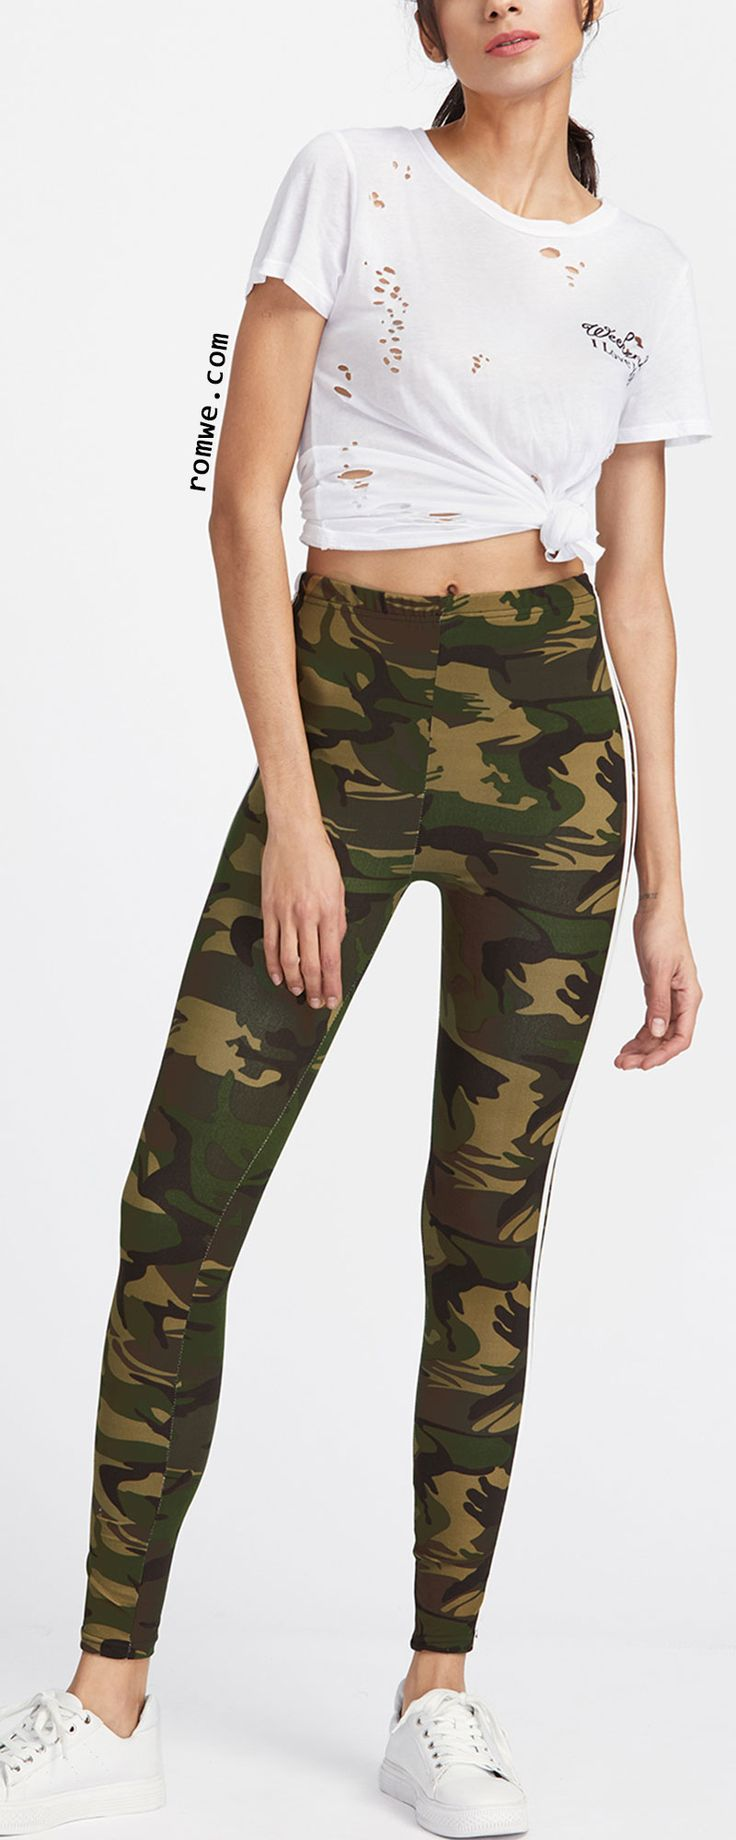 17 Best ideas about Camo Leggings Outfit on Pinterest | Camo outfits Camouflage fashion and ...